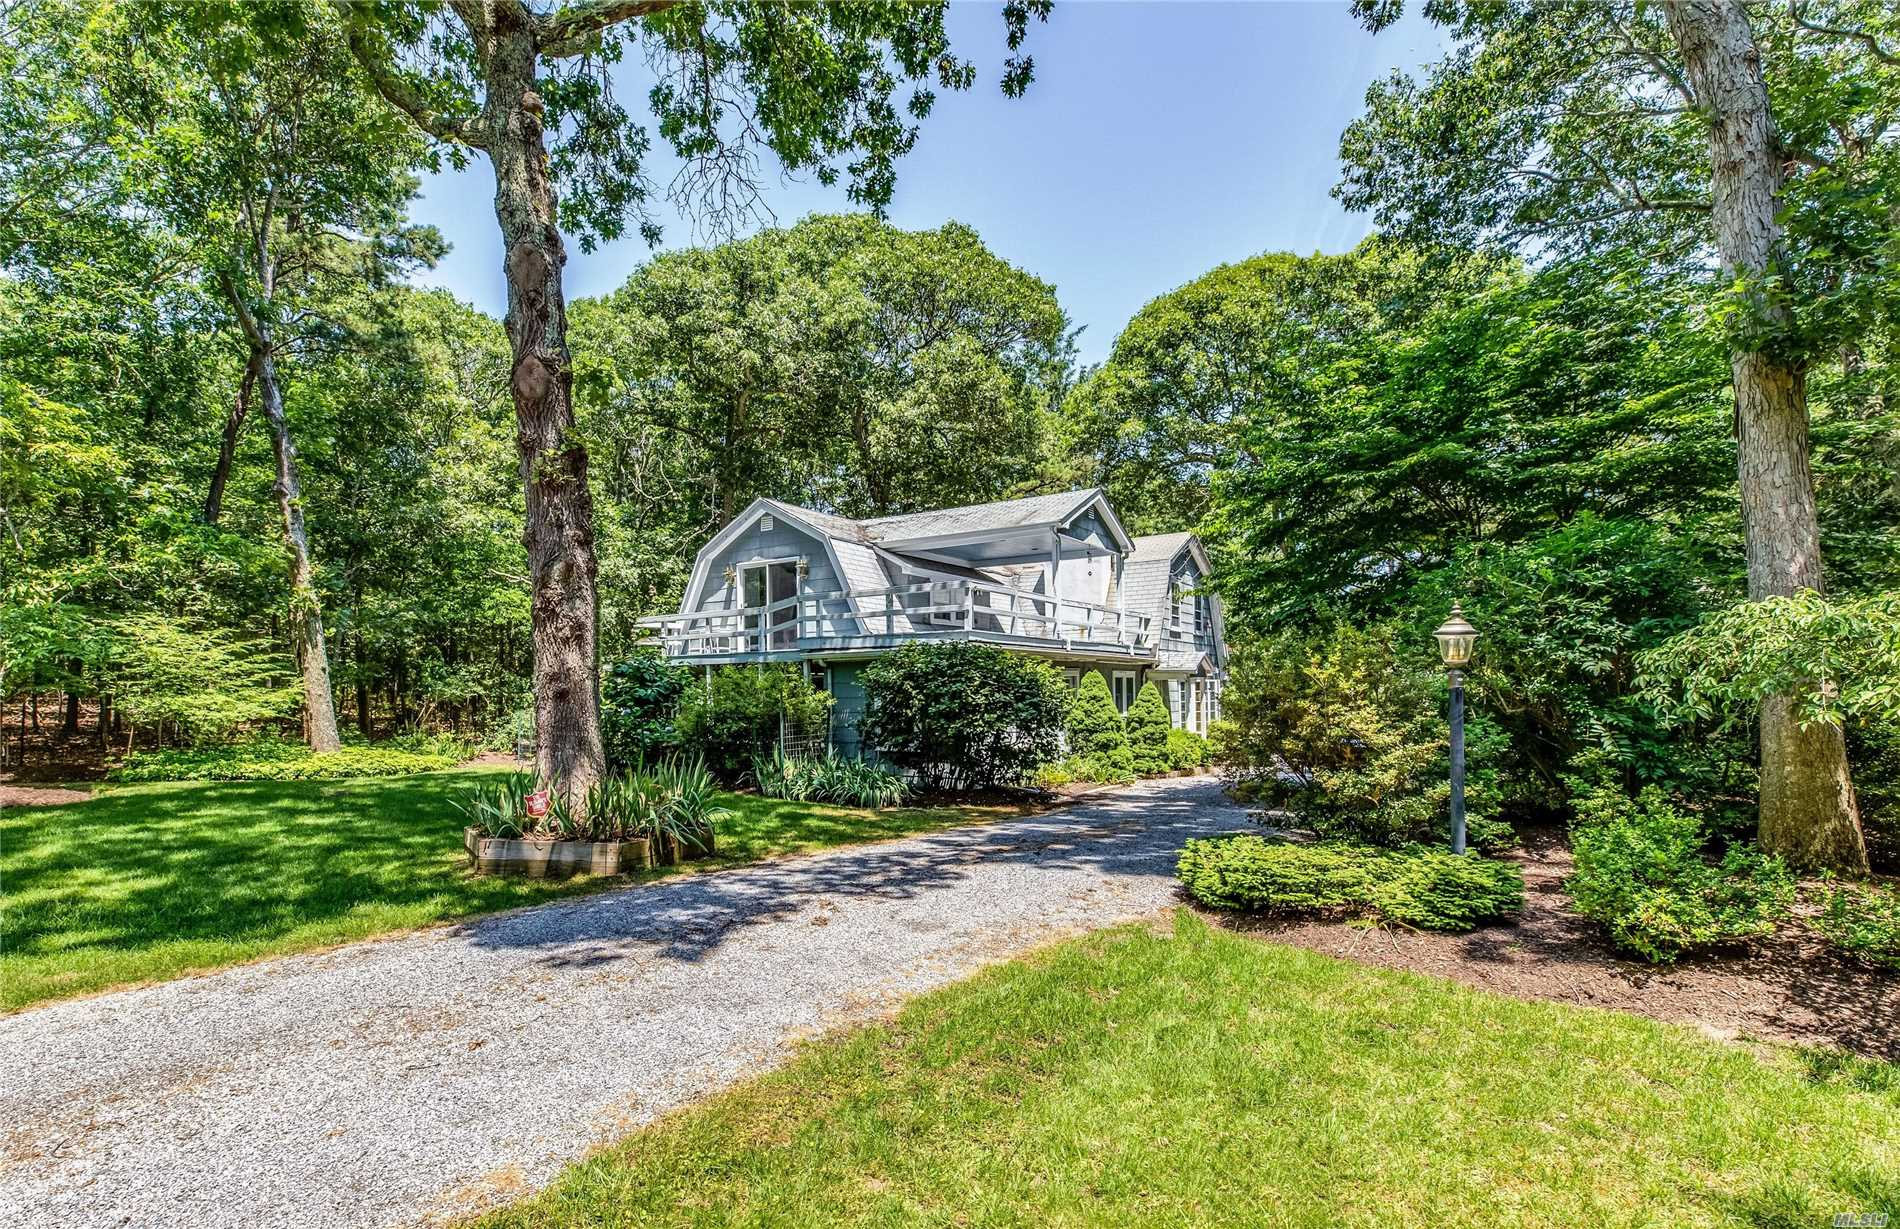 Price Reduction!!! Don't Miss Out On This Lovely Gambrel-Roof Two Story Home On .63 Acres. Walk To Private Nassau Point Bay Front Beach. Master Suite On First Floor, 2 Bedrooms And Bath On Second Floor. Home Has Some Features Of Original 1920'S Chalet-Style Home That Has Been Redesigned And Enlarged. Large Great Room, Eat-In Kitchen And 3-Season Porch. Nicely Landscaped With Mature Plantings.